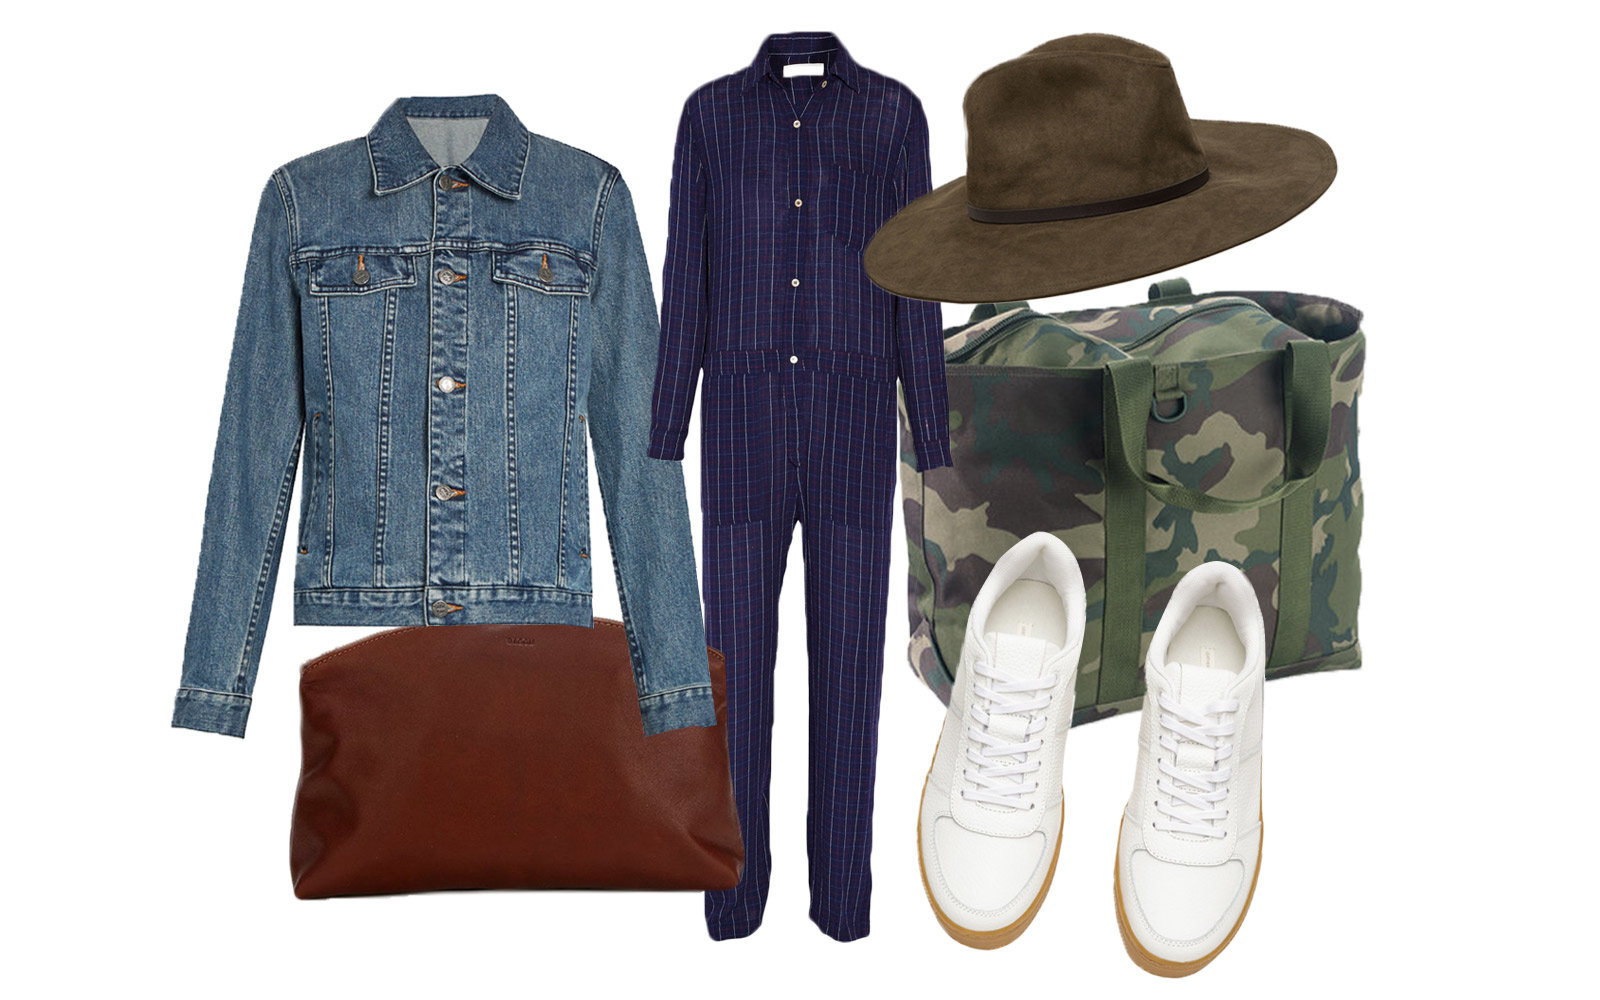 The Perfect Look for a Fall Afternoon in the Park